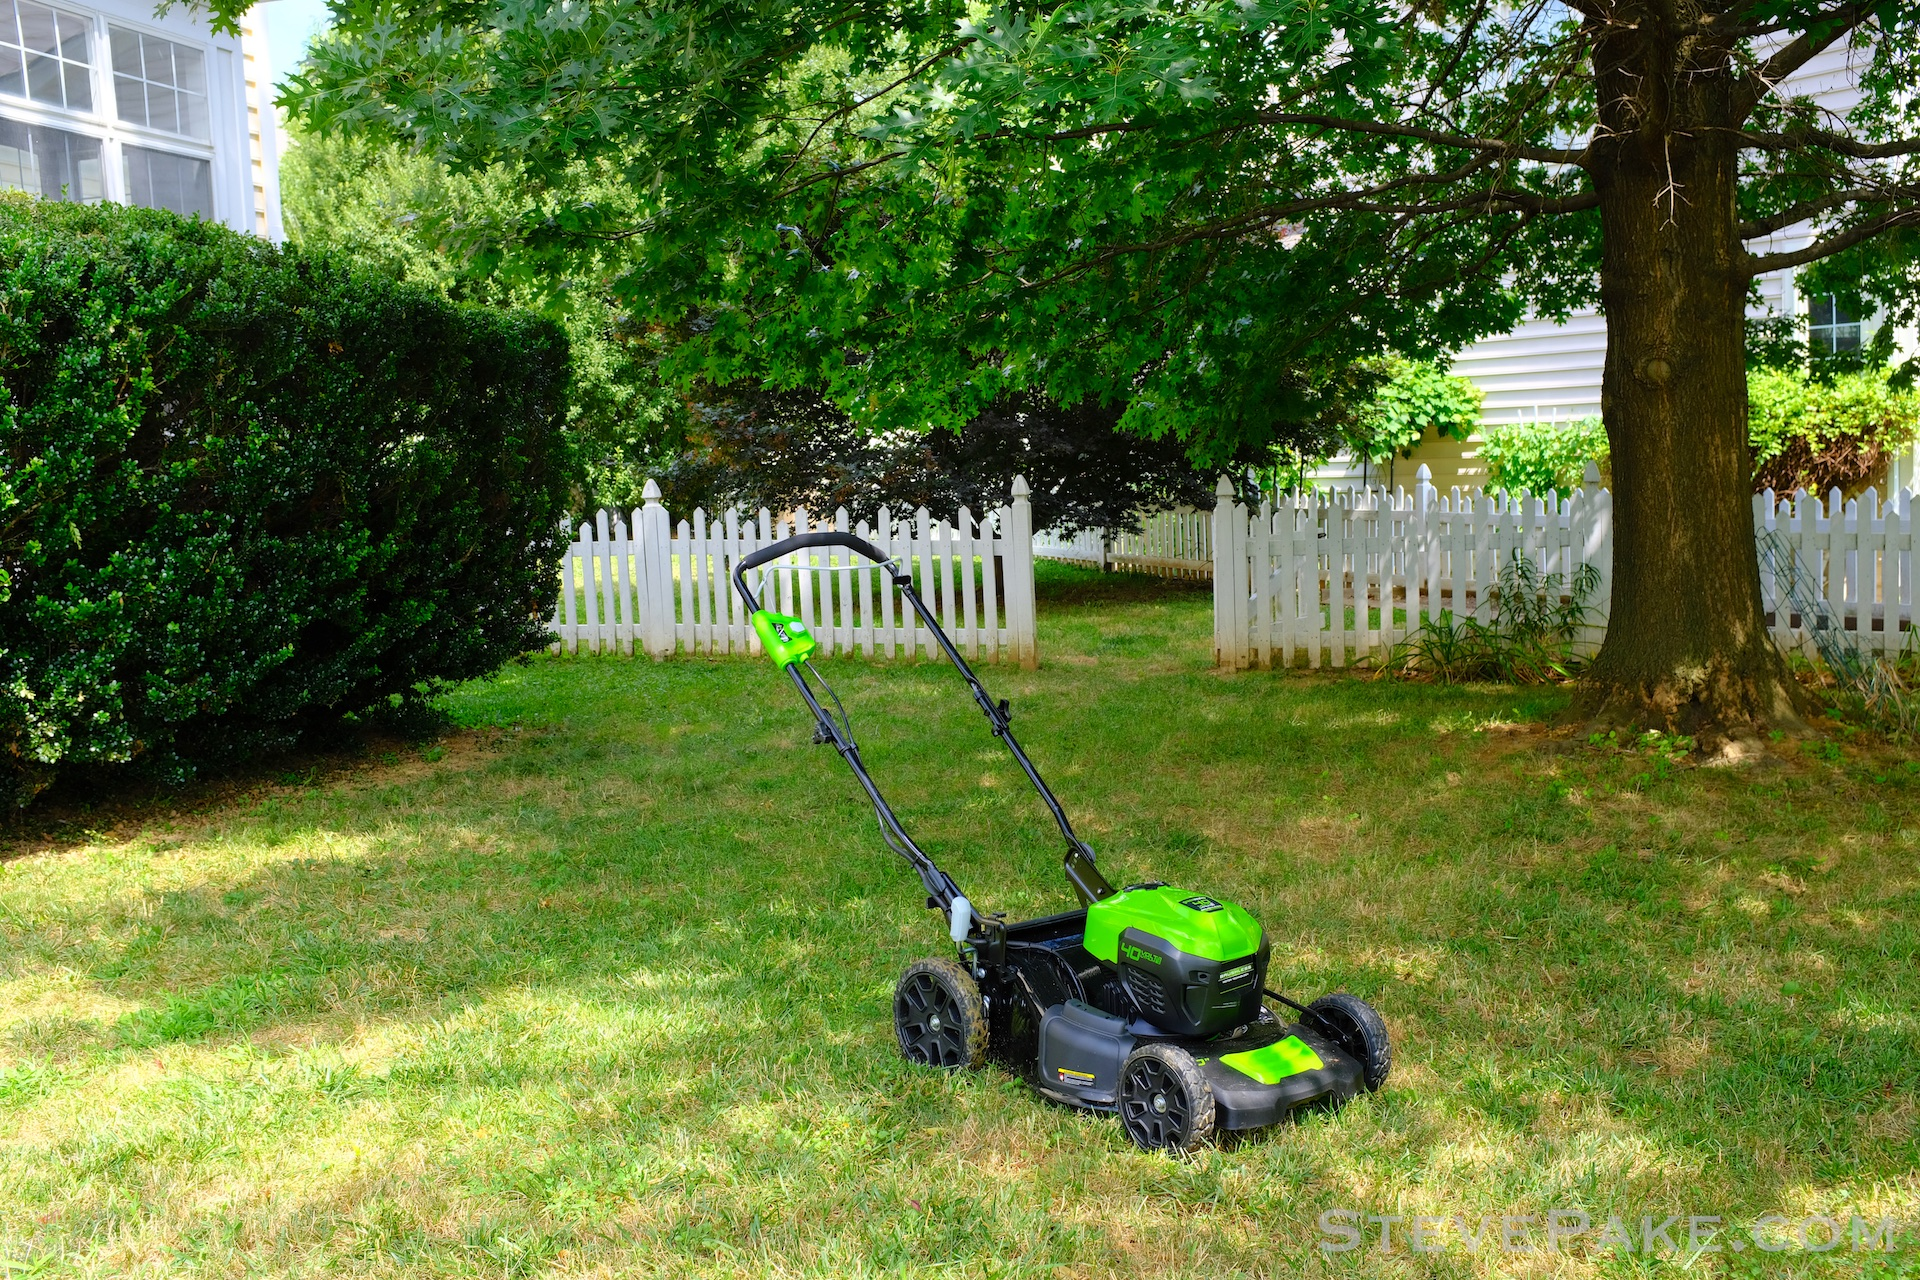 First time mowing with my new electric lawn mower. Branding has been intentionally photoshopped out.There are industry wide shenanigans going on, so the point was not to single out any one manufacturer.